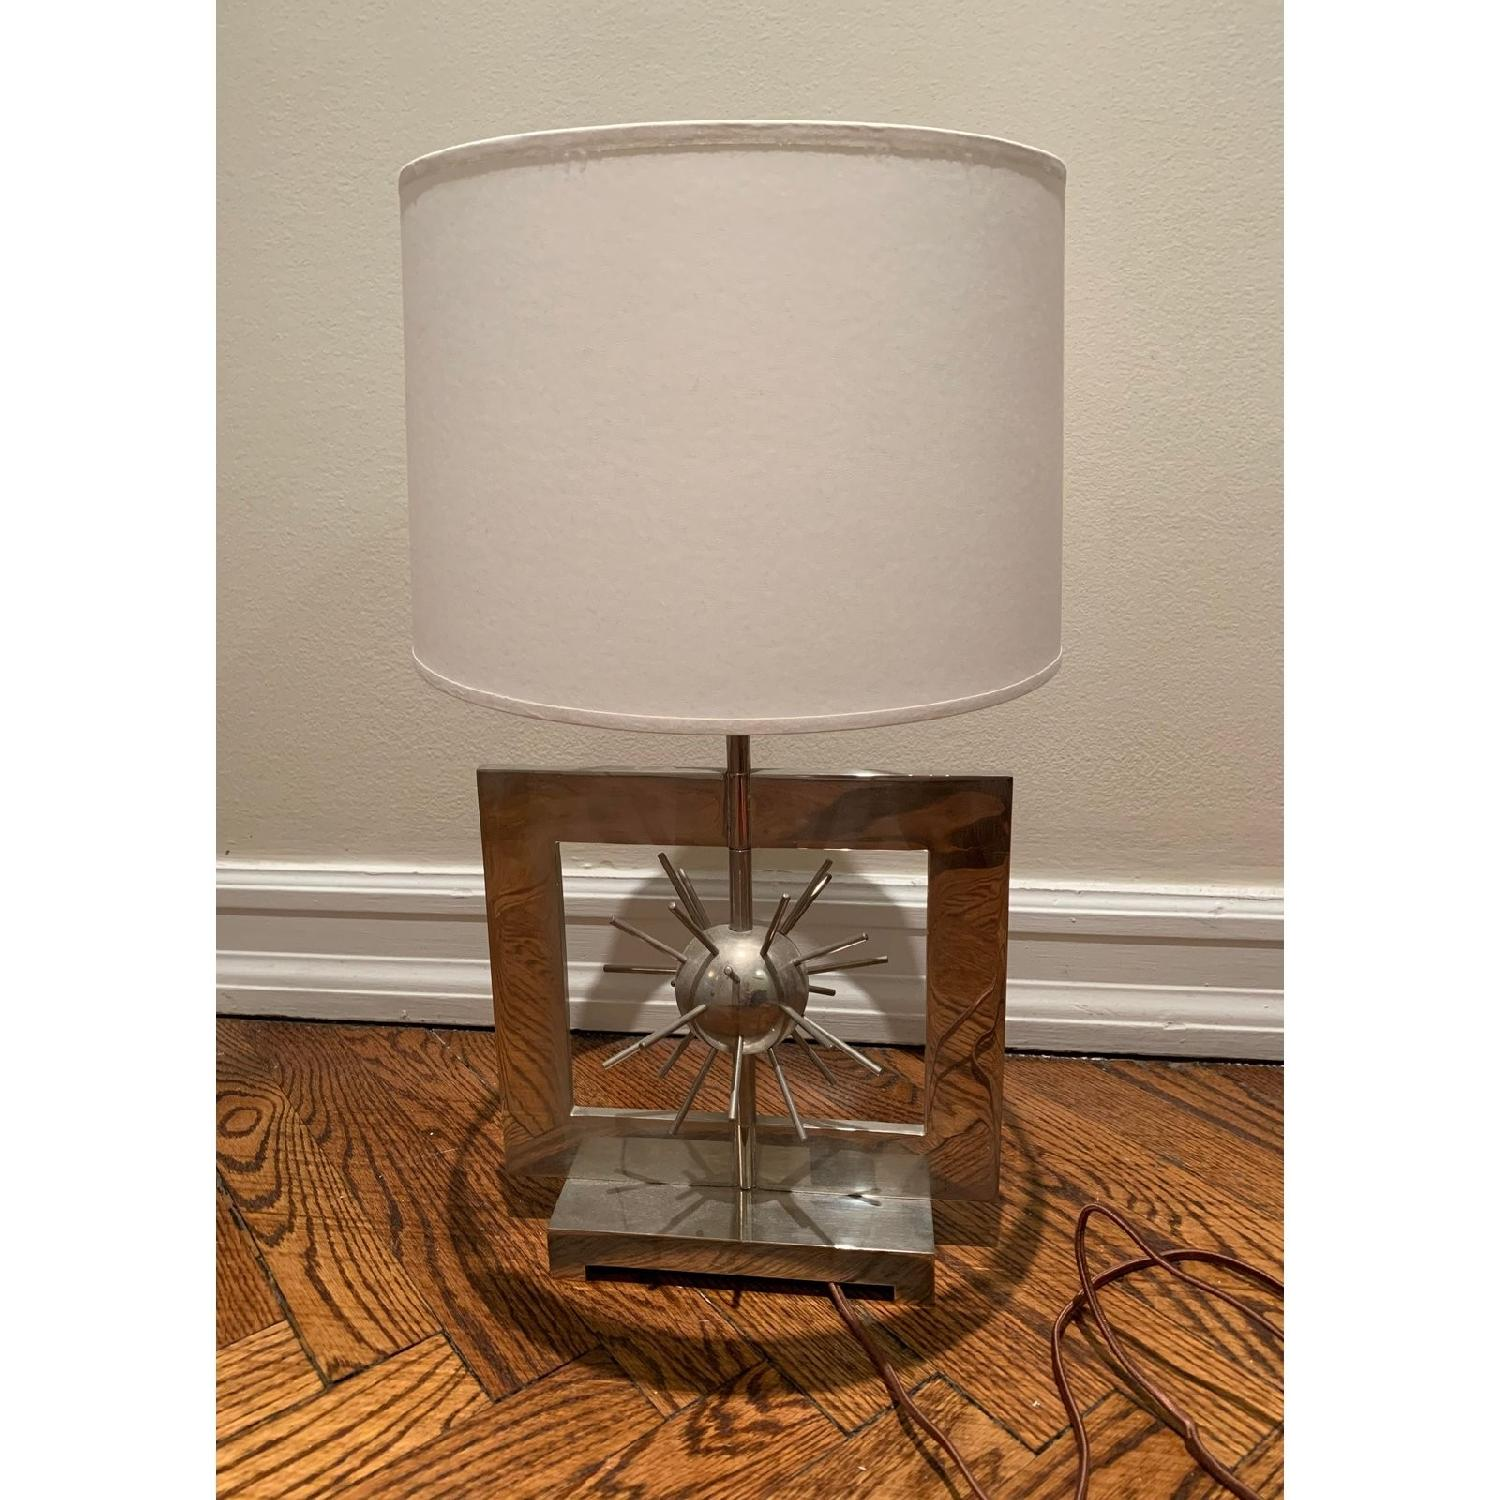 Spiked Accent Table Lamp-2